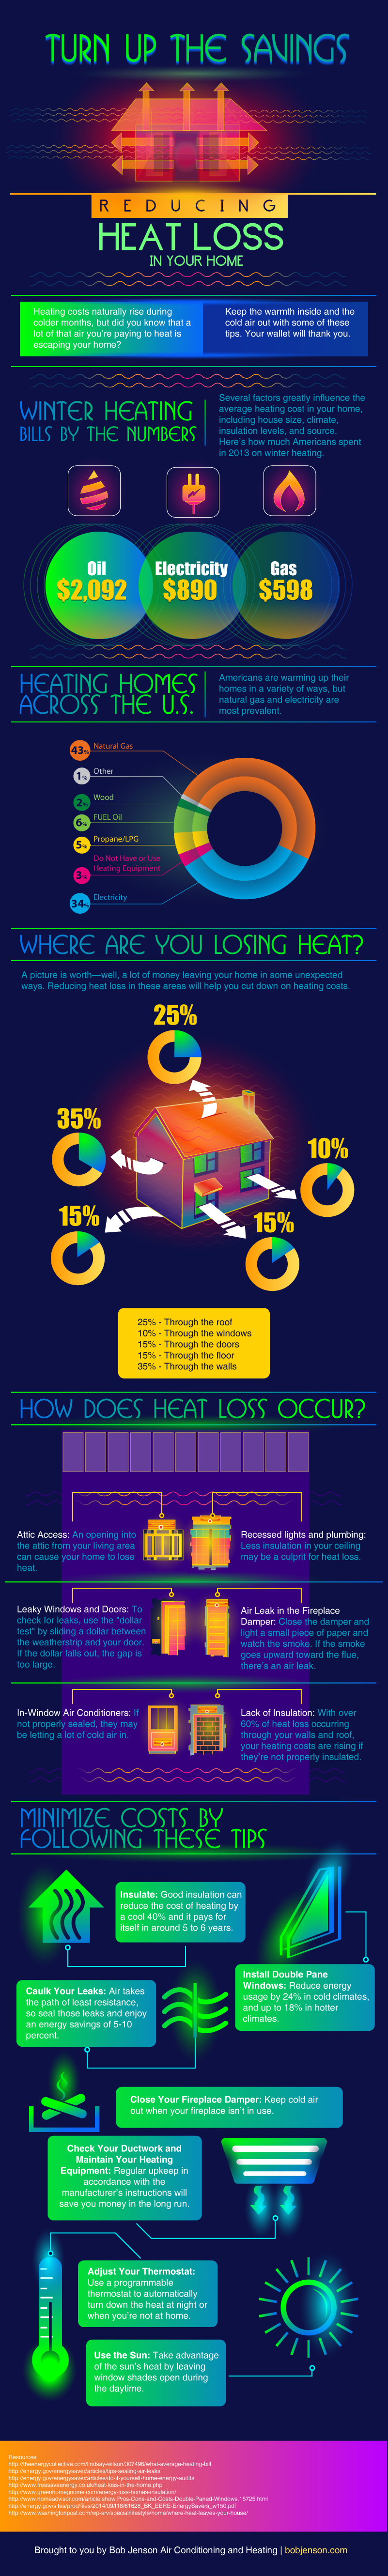 Turn Up The Savings Reducing Heat Loss In Your Home